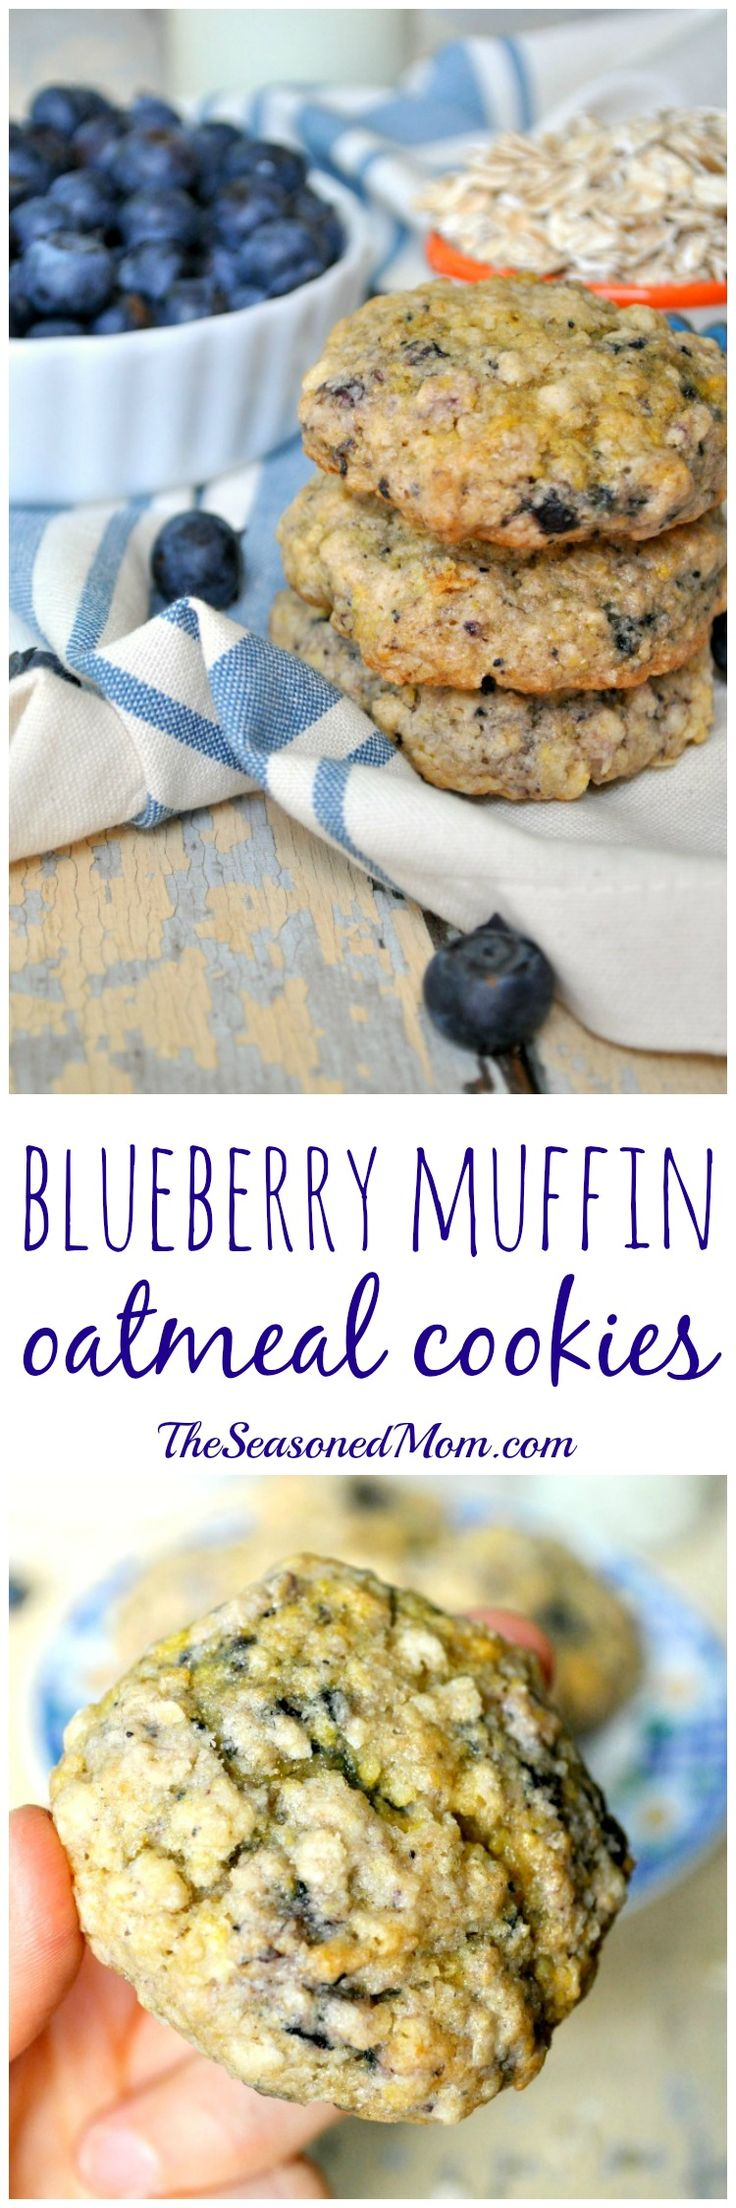 whole grains + a boxed muffin mix - thick, soft, and chewy Blueberry Muffin Oatmeal Cookies - perfect for breakfast, snack, or even dessert!